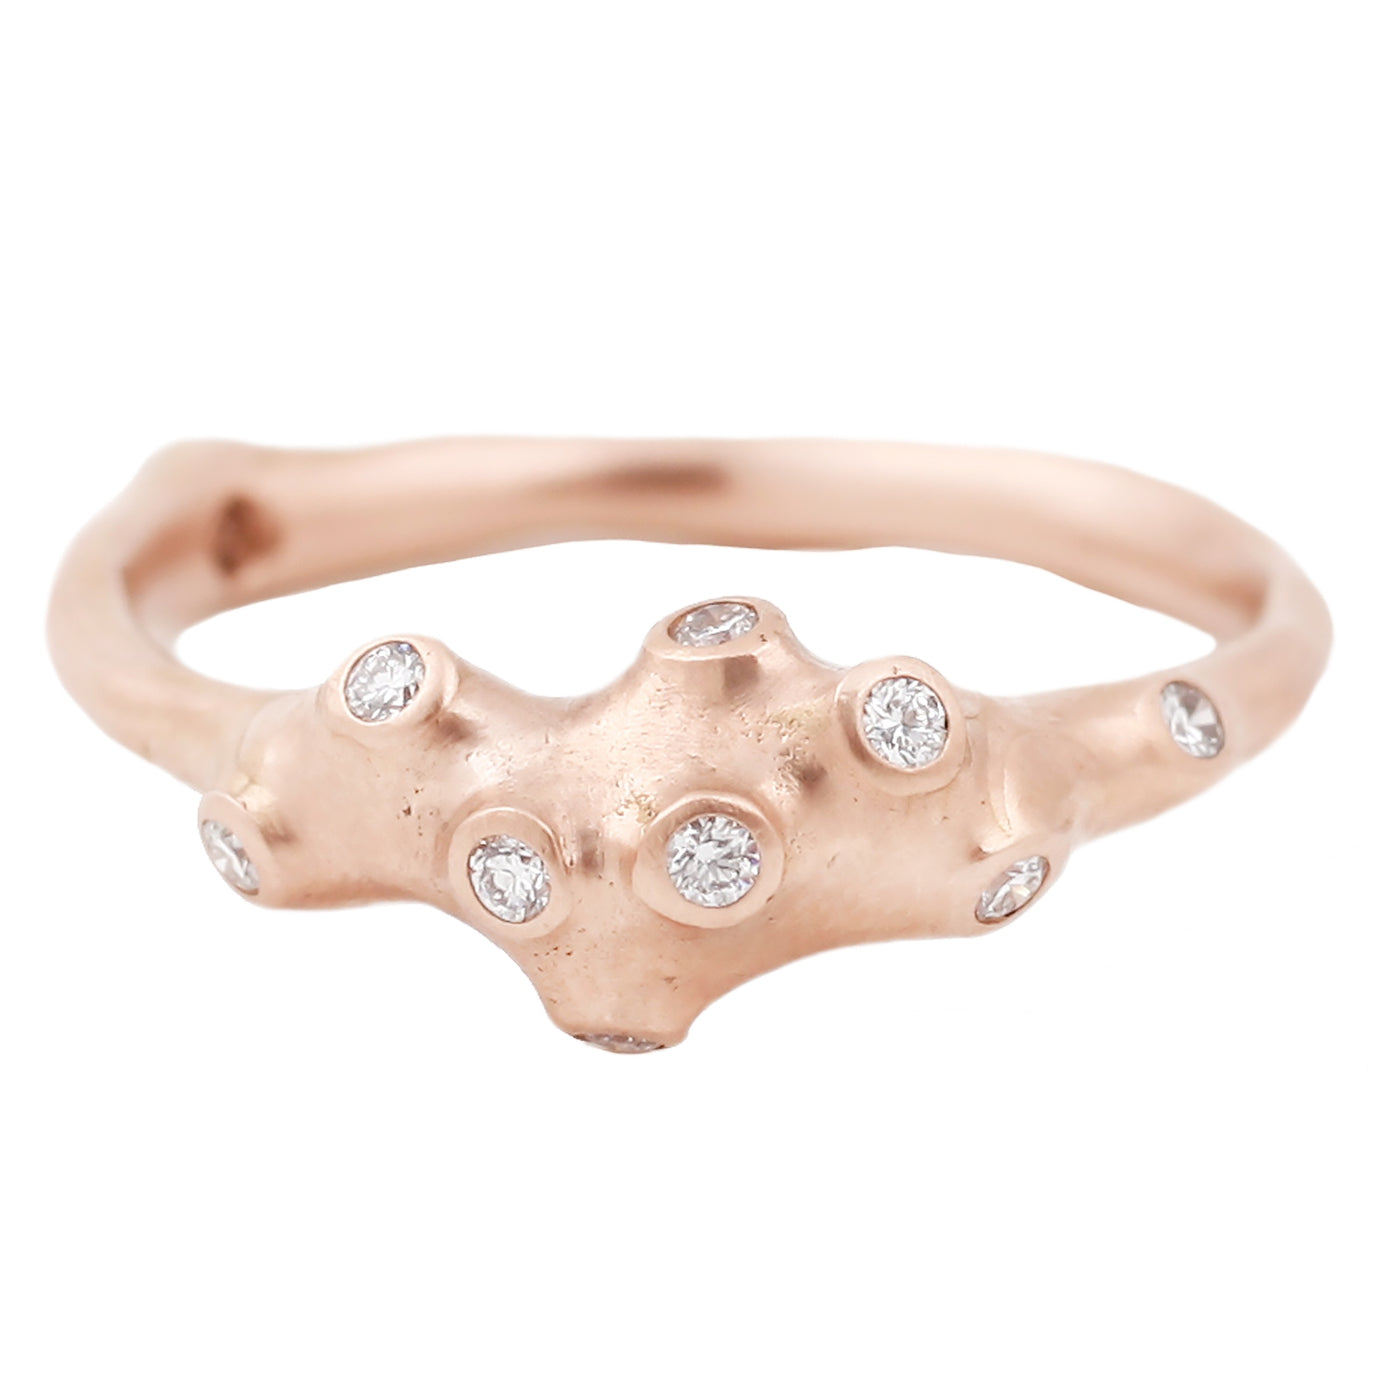 Johnny Ninos Rose Gold and White Diamond Barnacle Ring